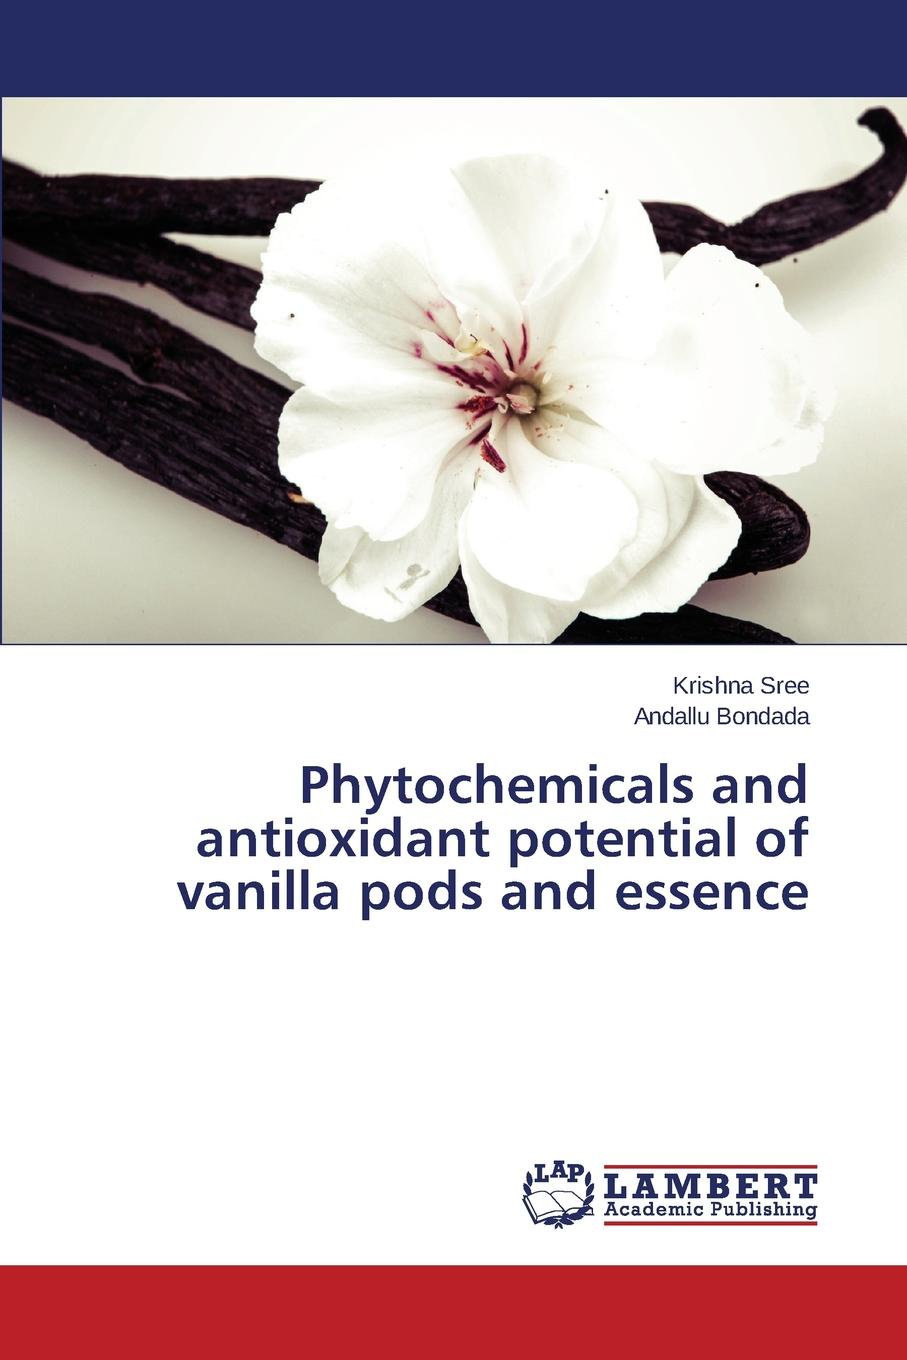 Sree Krishna, Bondada Andallu Phytochemicals and antioxidant potential of vanilla pods and essence цена